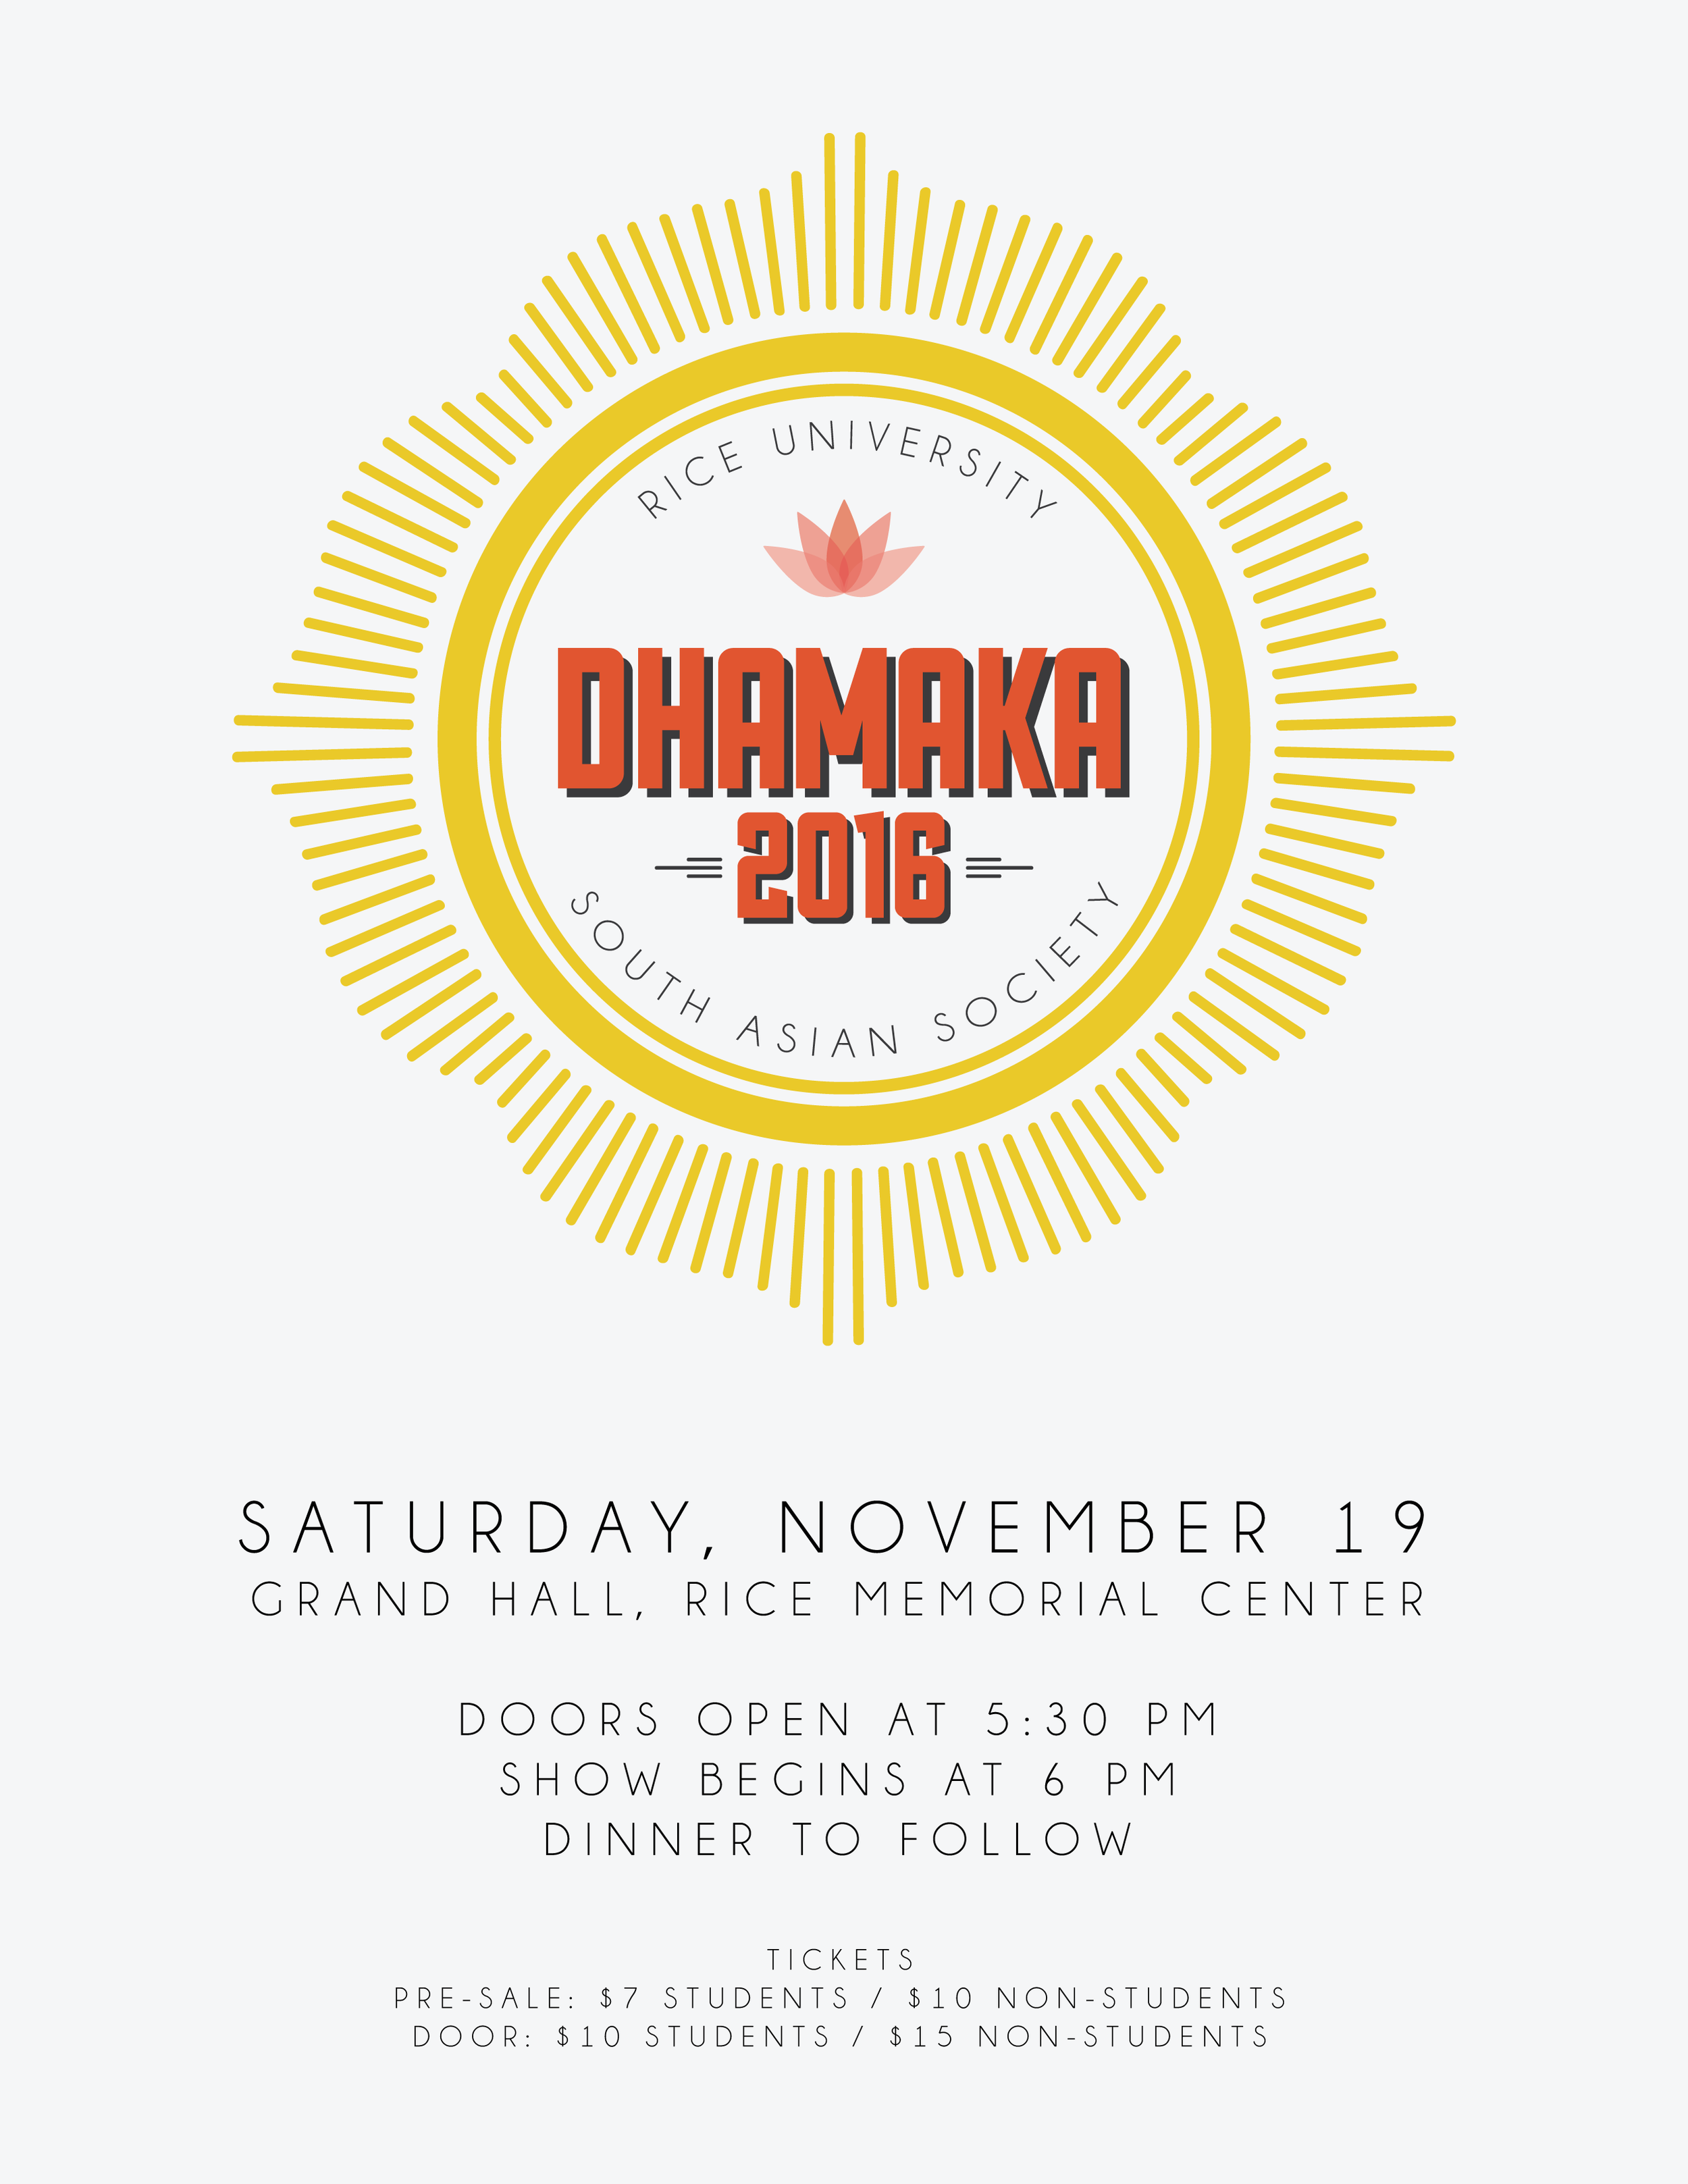 FINAL_Dhamaka2016_Flyer_8x11.png